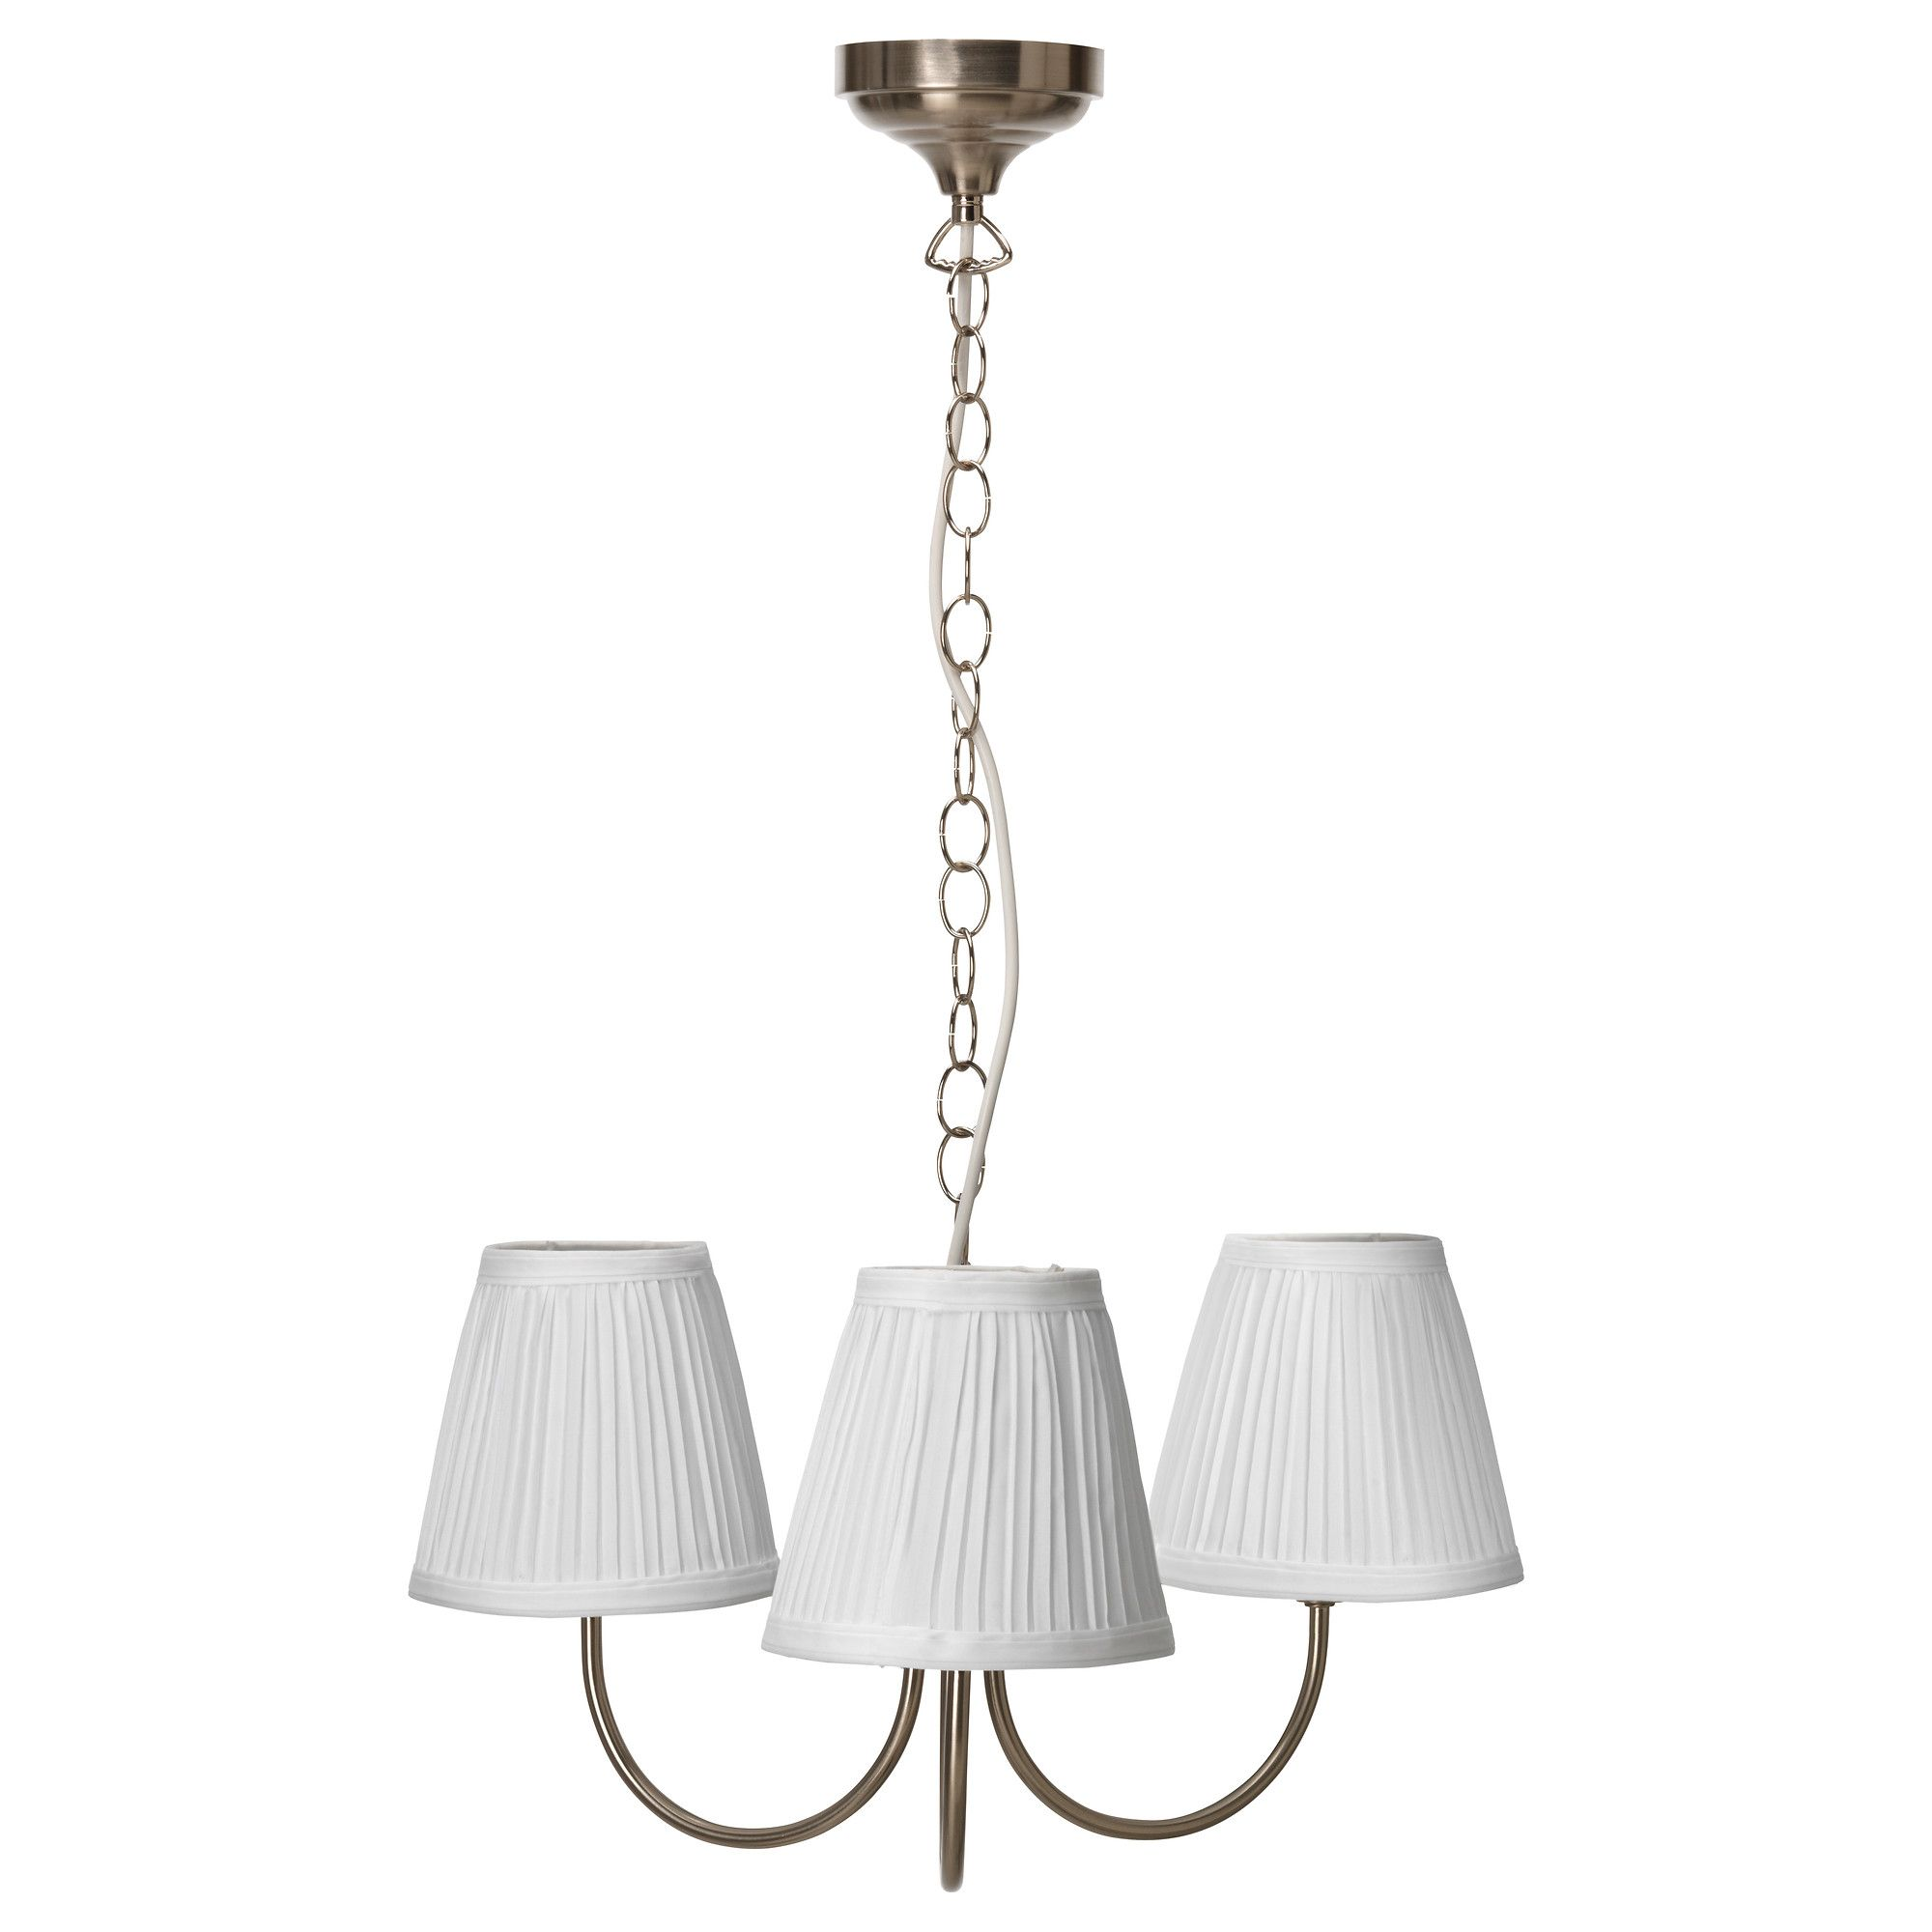 Rstid suspension 3 bras pendant lamps front hallway and lights kitchens aloadofball Choice Image